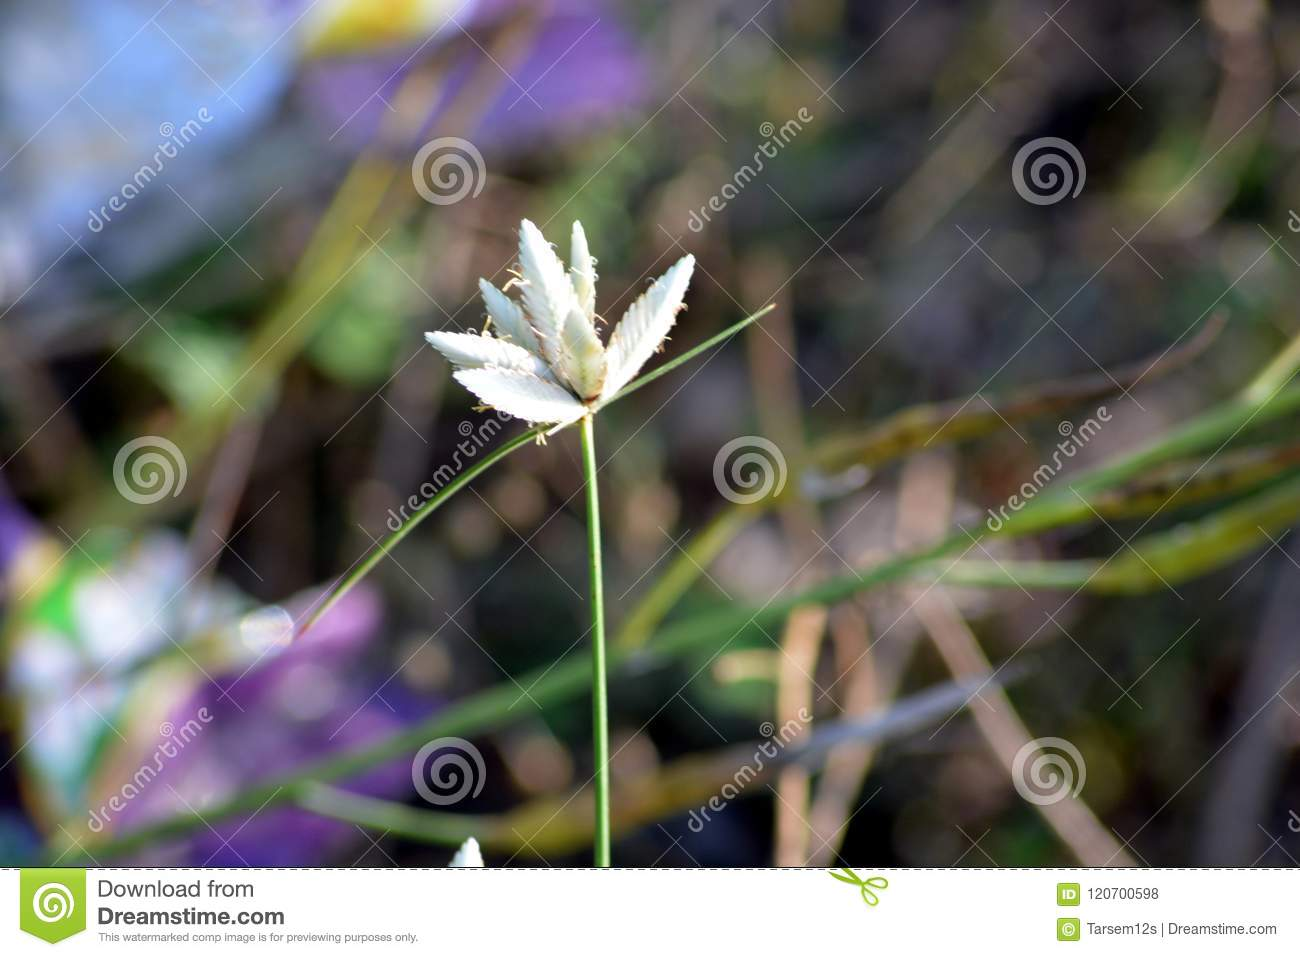 A Beautiful Small White Flower In Garden Stock Photo Image Of